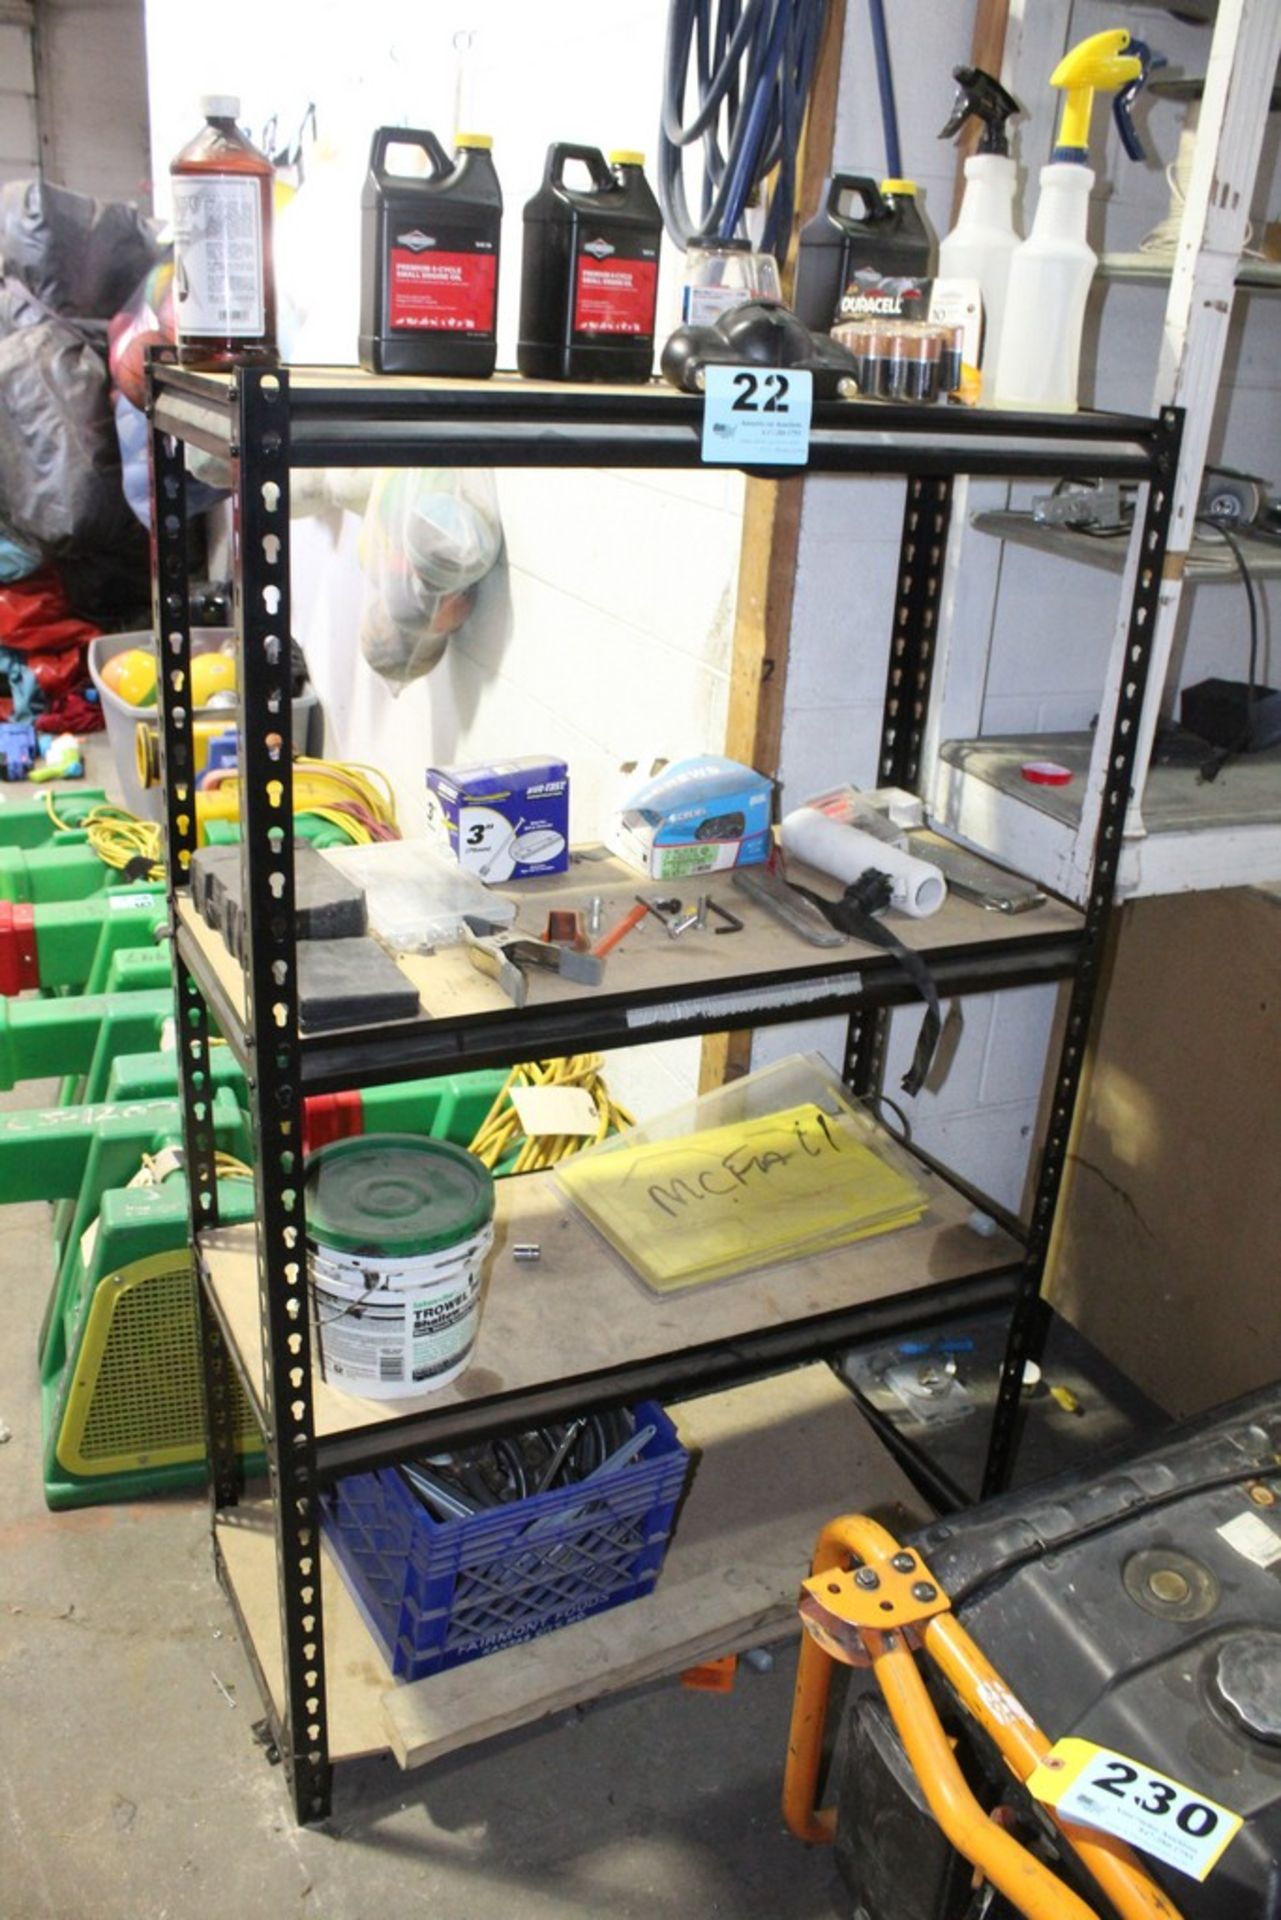 "Lot 22 - STEEL SHELVING UNIT WITH CONTENTS-58"" X 36"" X 18"""